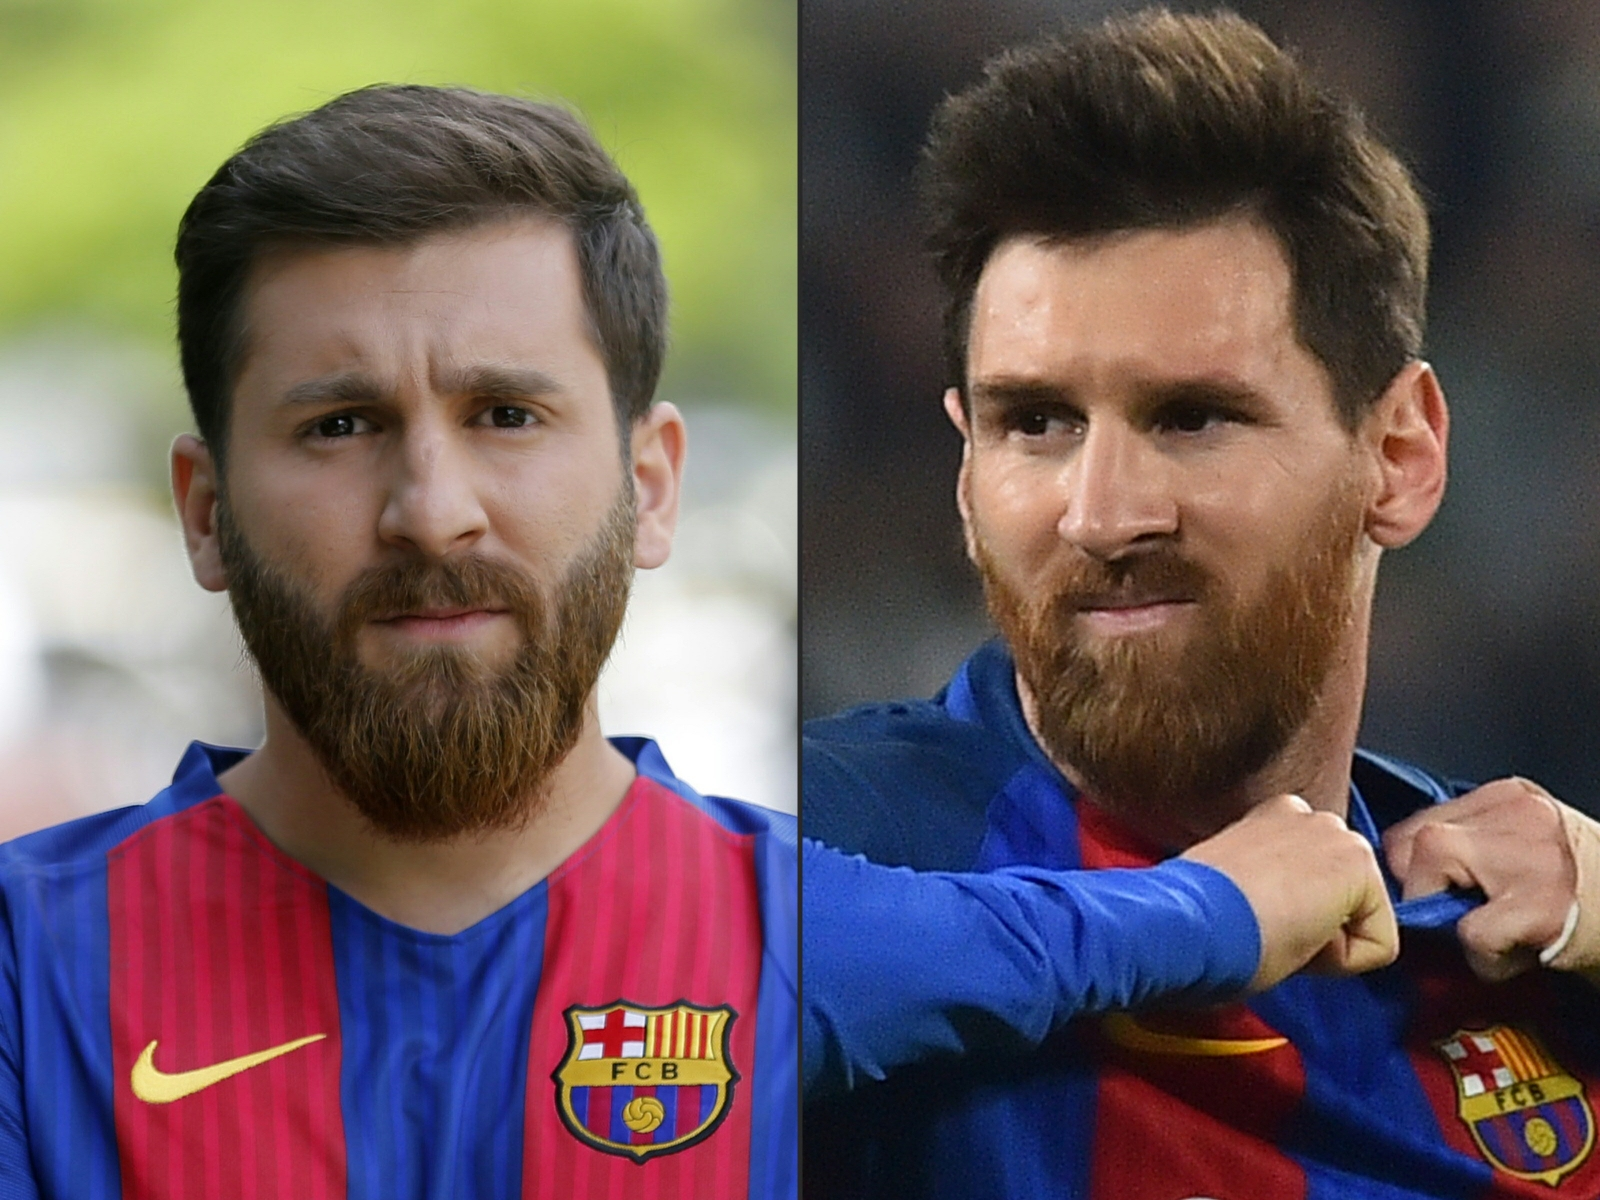 Holy crap, this guy looks EXACTLY like Lionel Messi